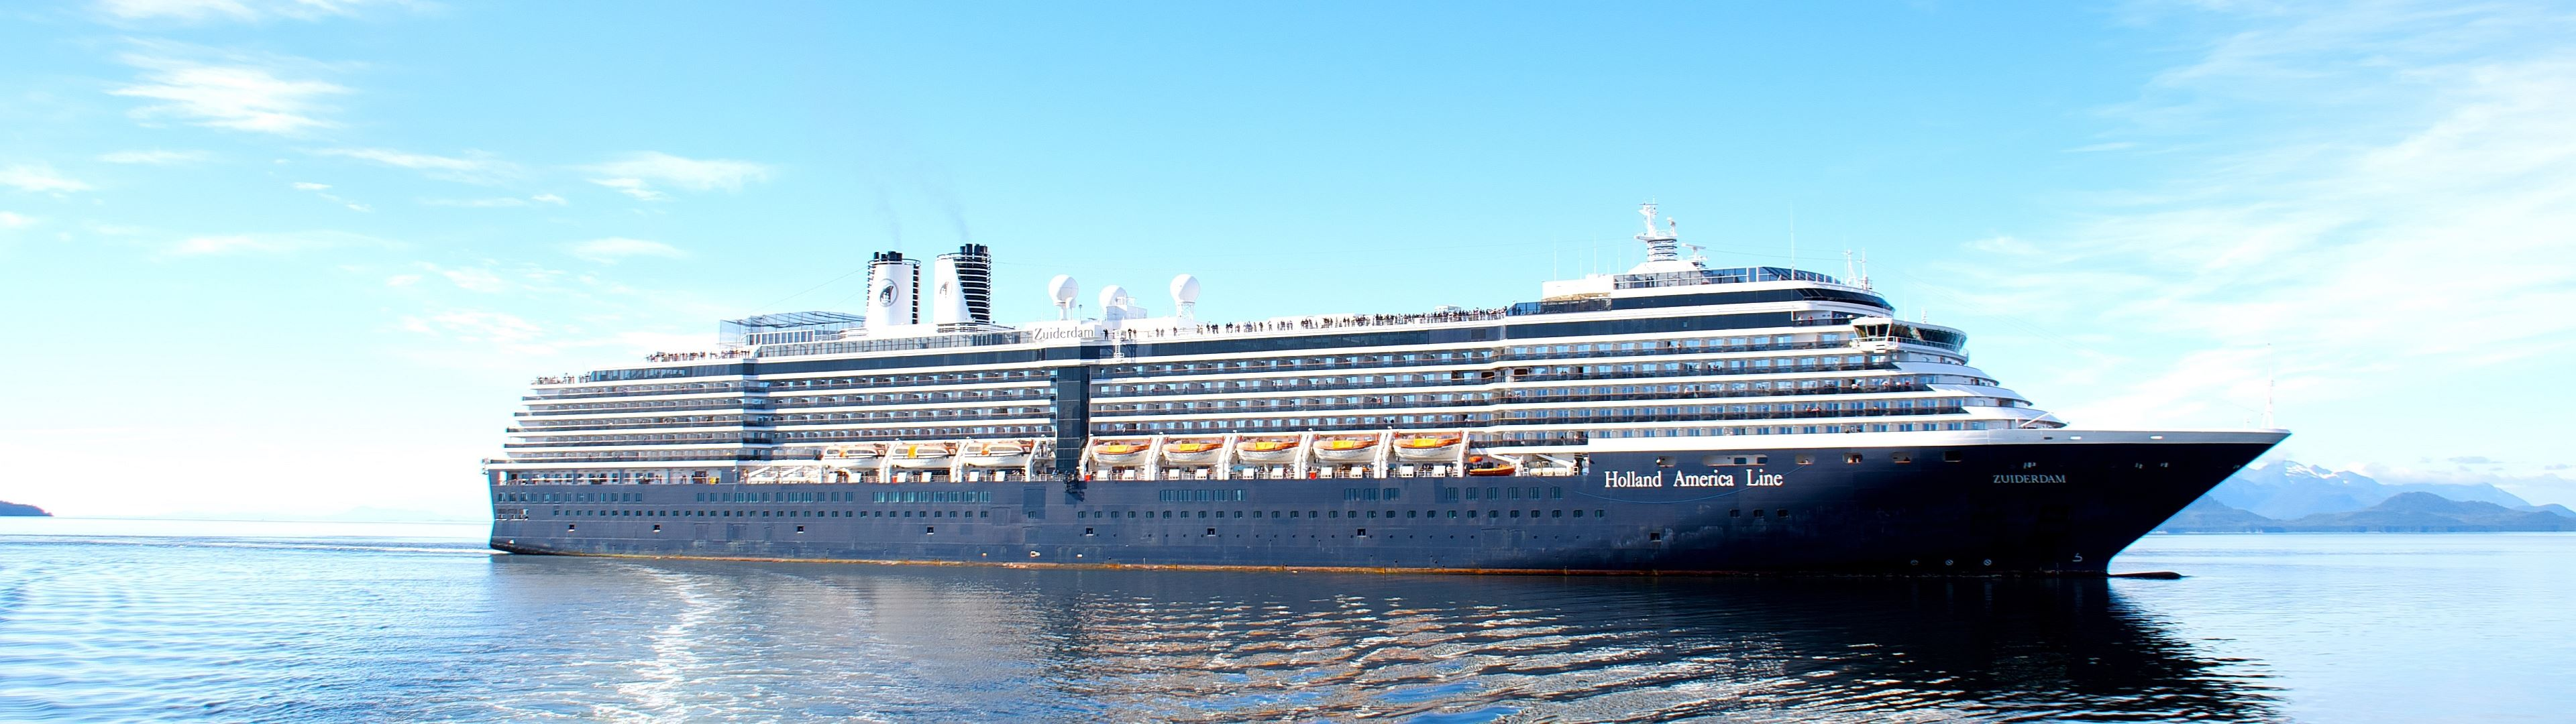 Cruise Ship Hd Wallpaper Background Image 3840x1080